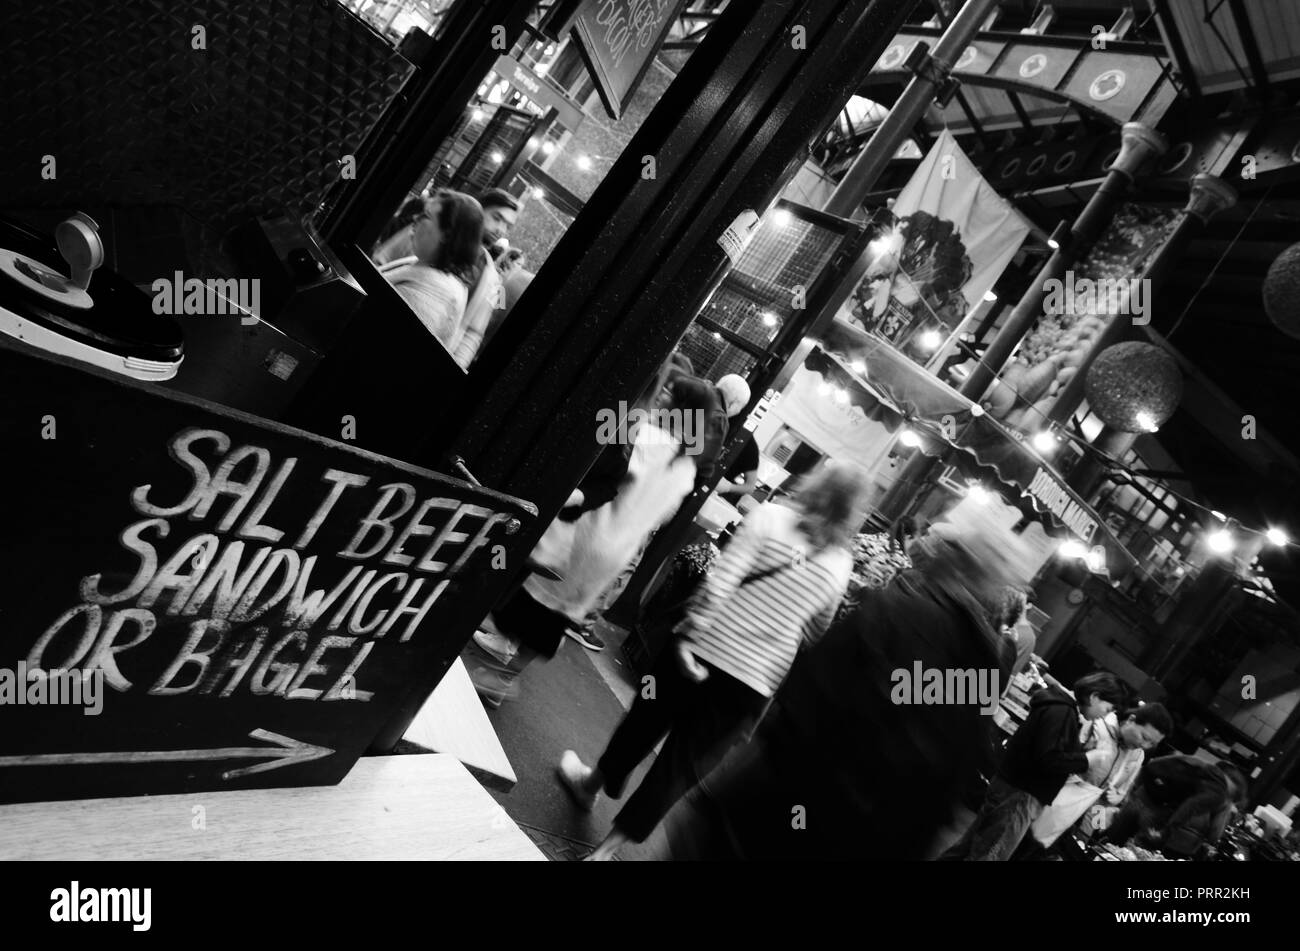 Black and white photograph. Salt beef sandwich and bagel sign, Borough Market, Southwark, London, England, UK. - Stock Image